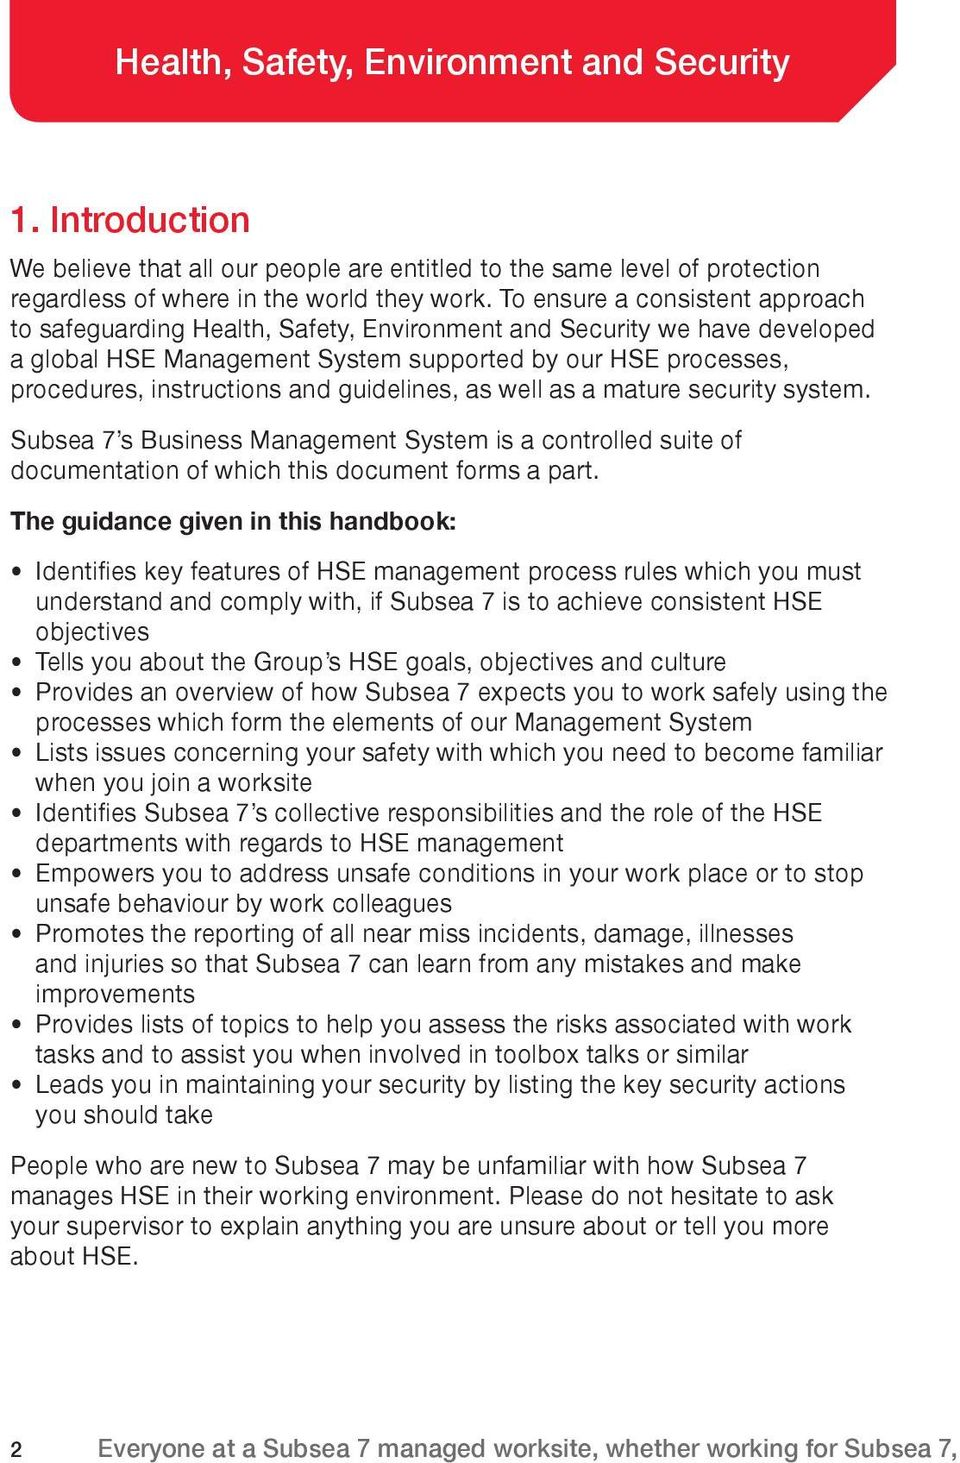 guidelines, as well as a mature security system. Subsea 7 s Business Management System is a controlled suite of documentation of which this document forms a part.